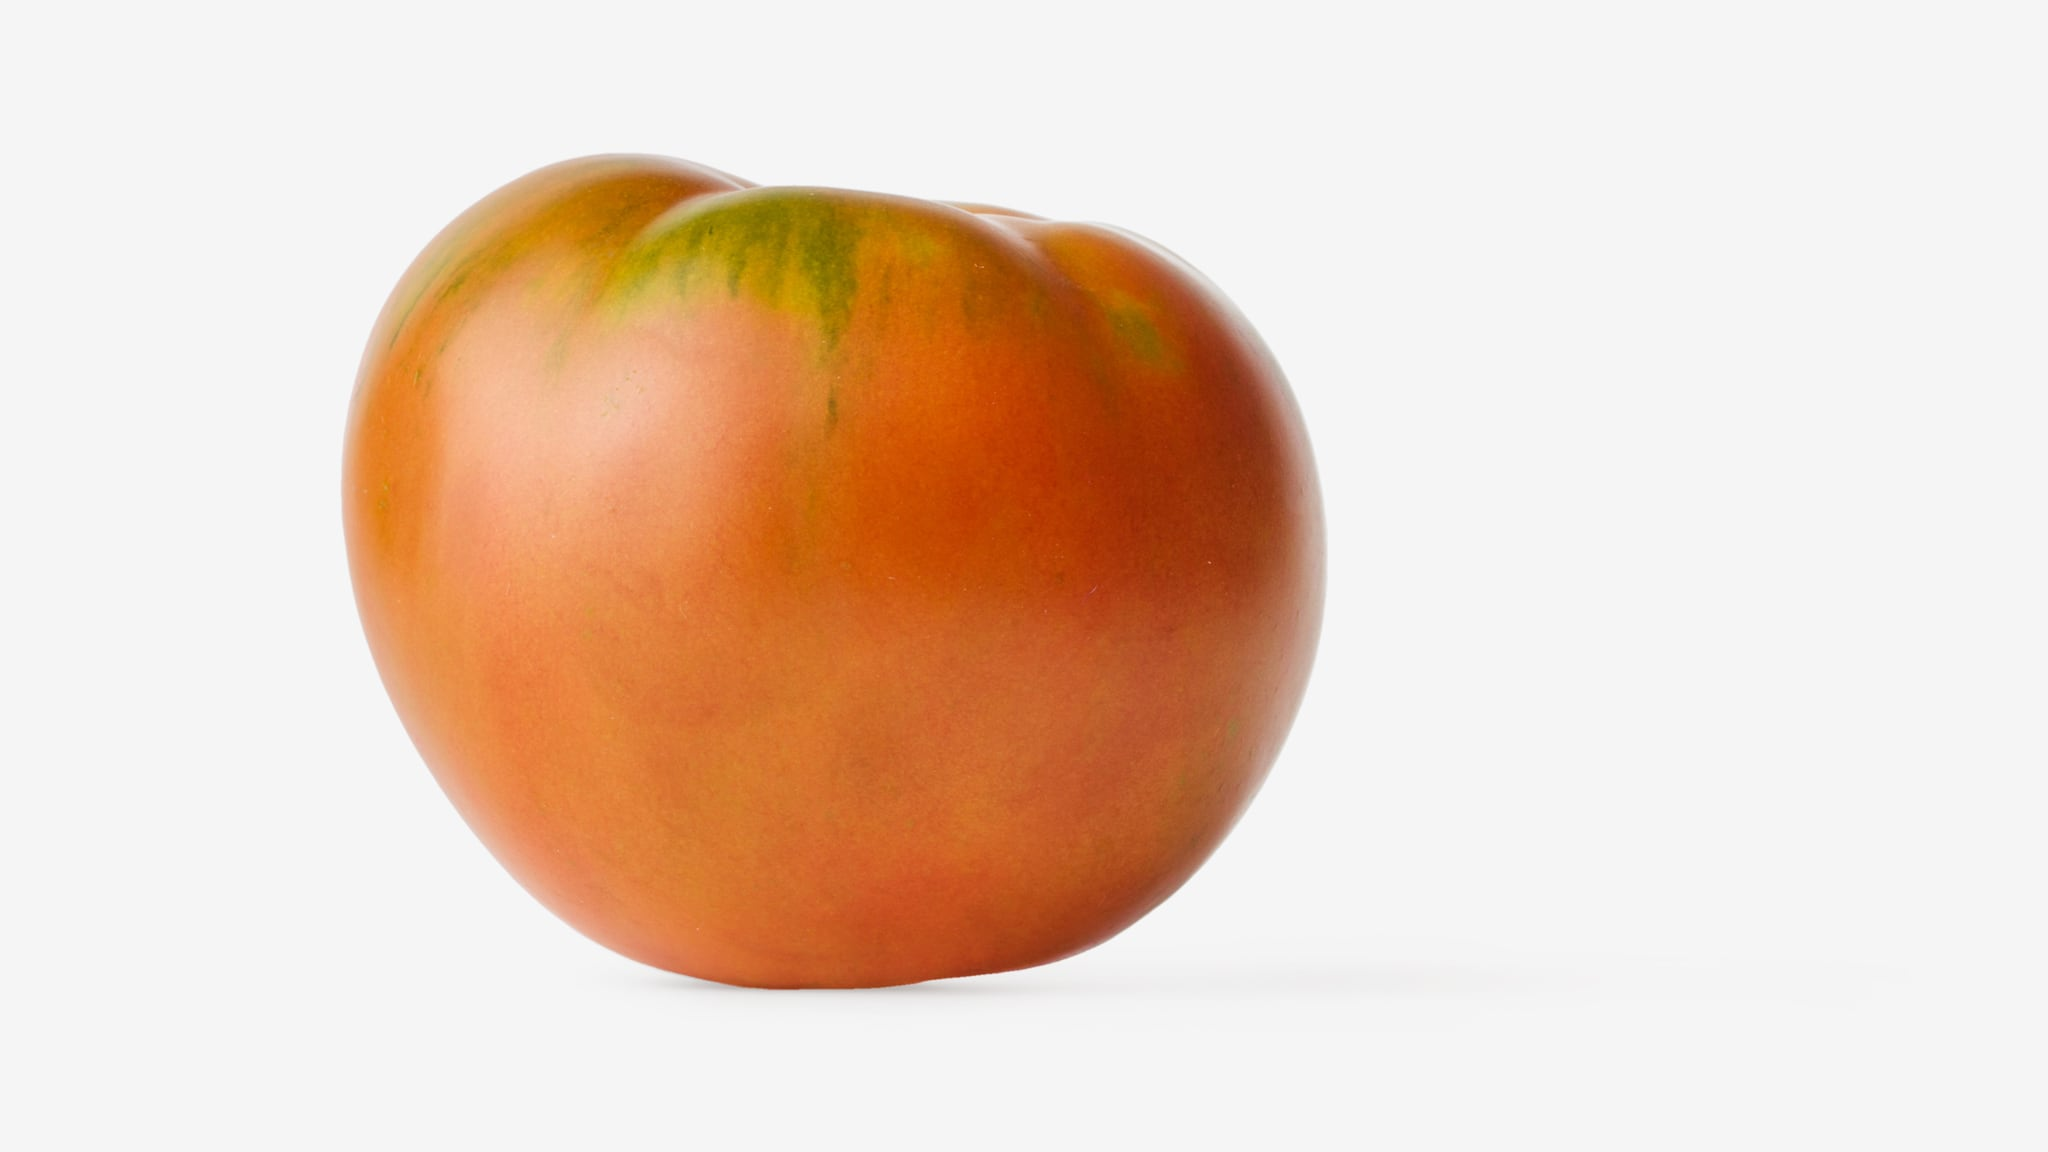 Tomato PSD image with transparent background